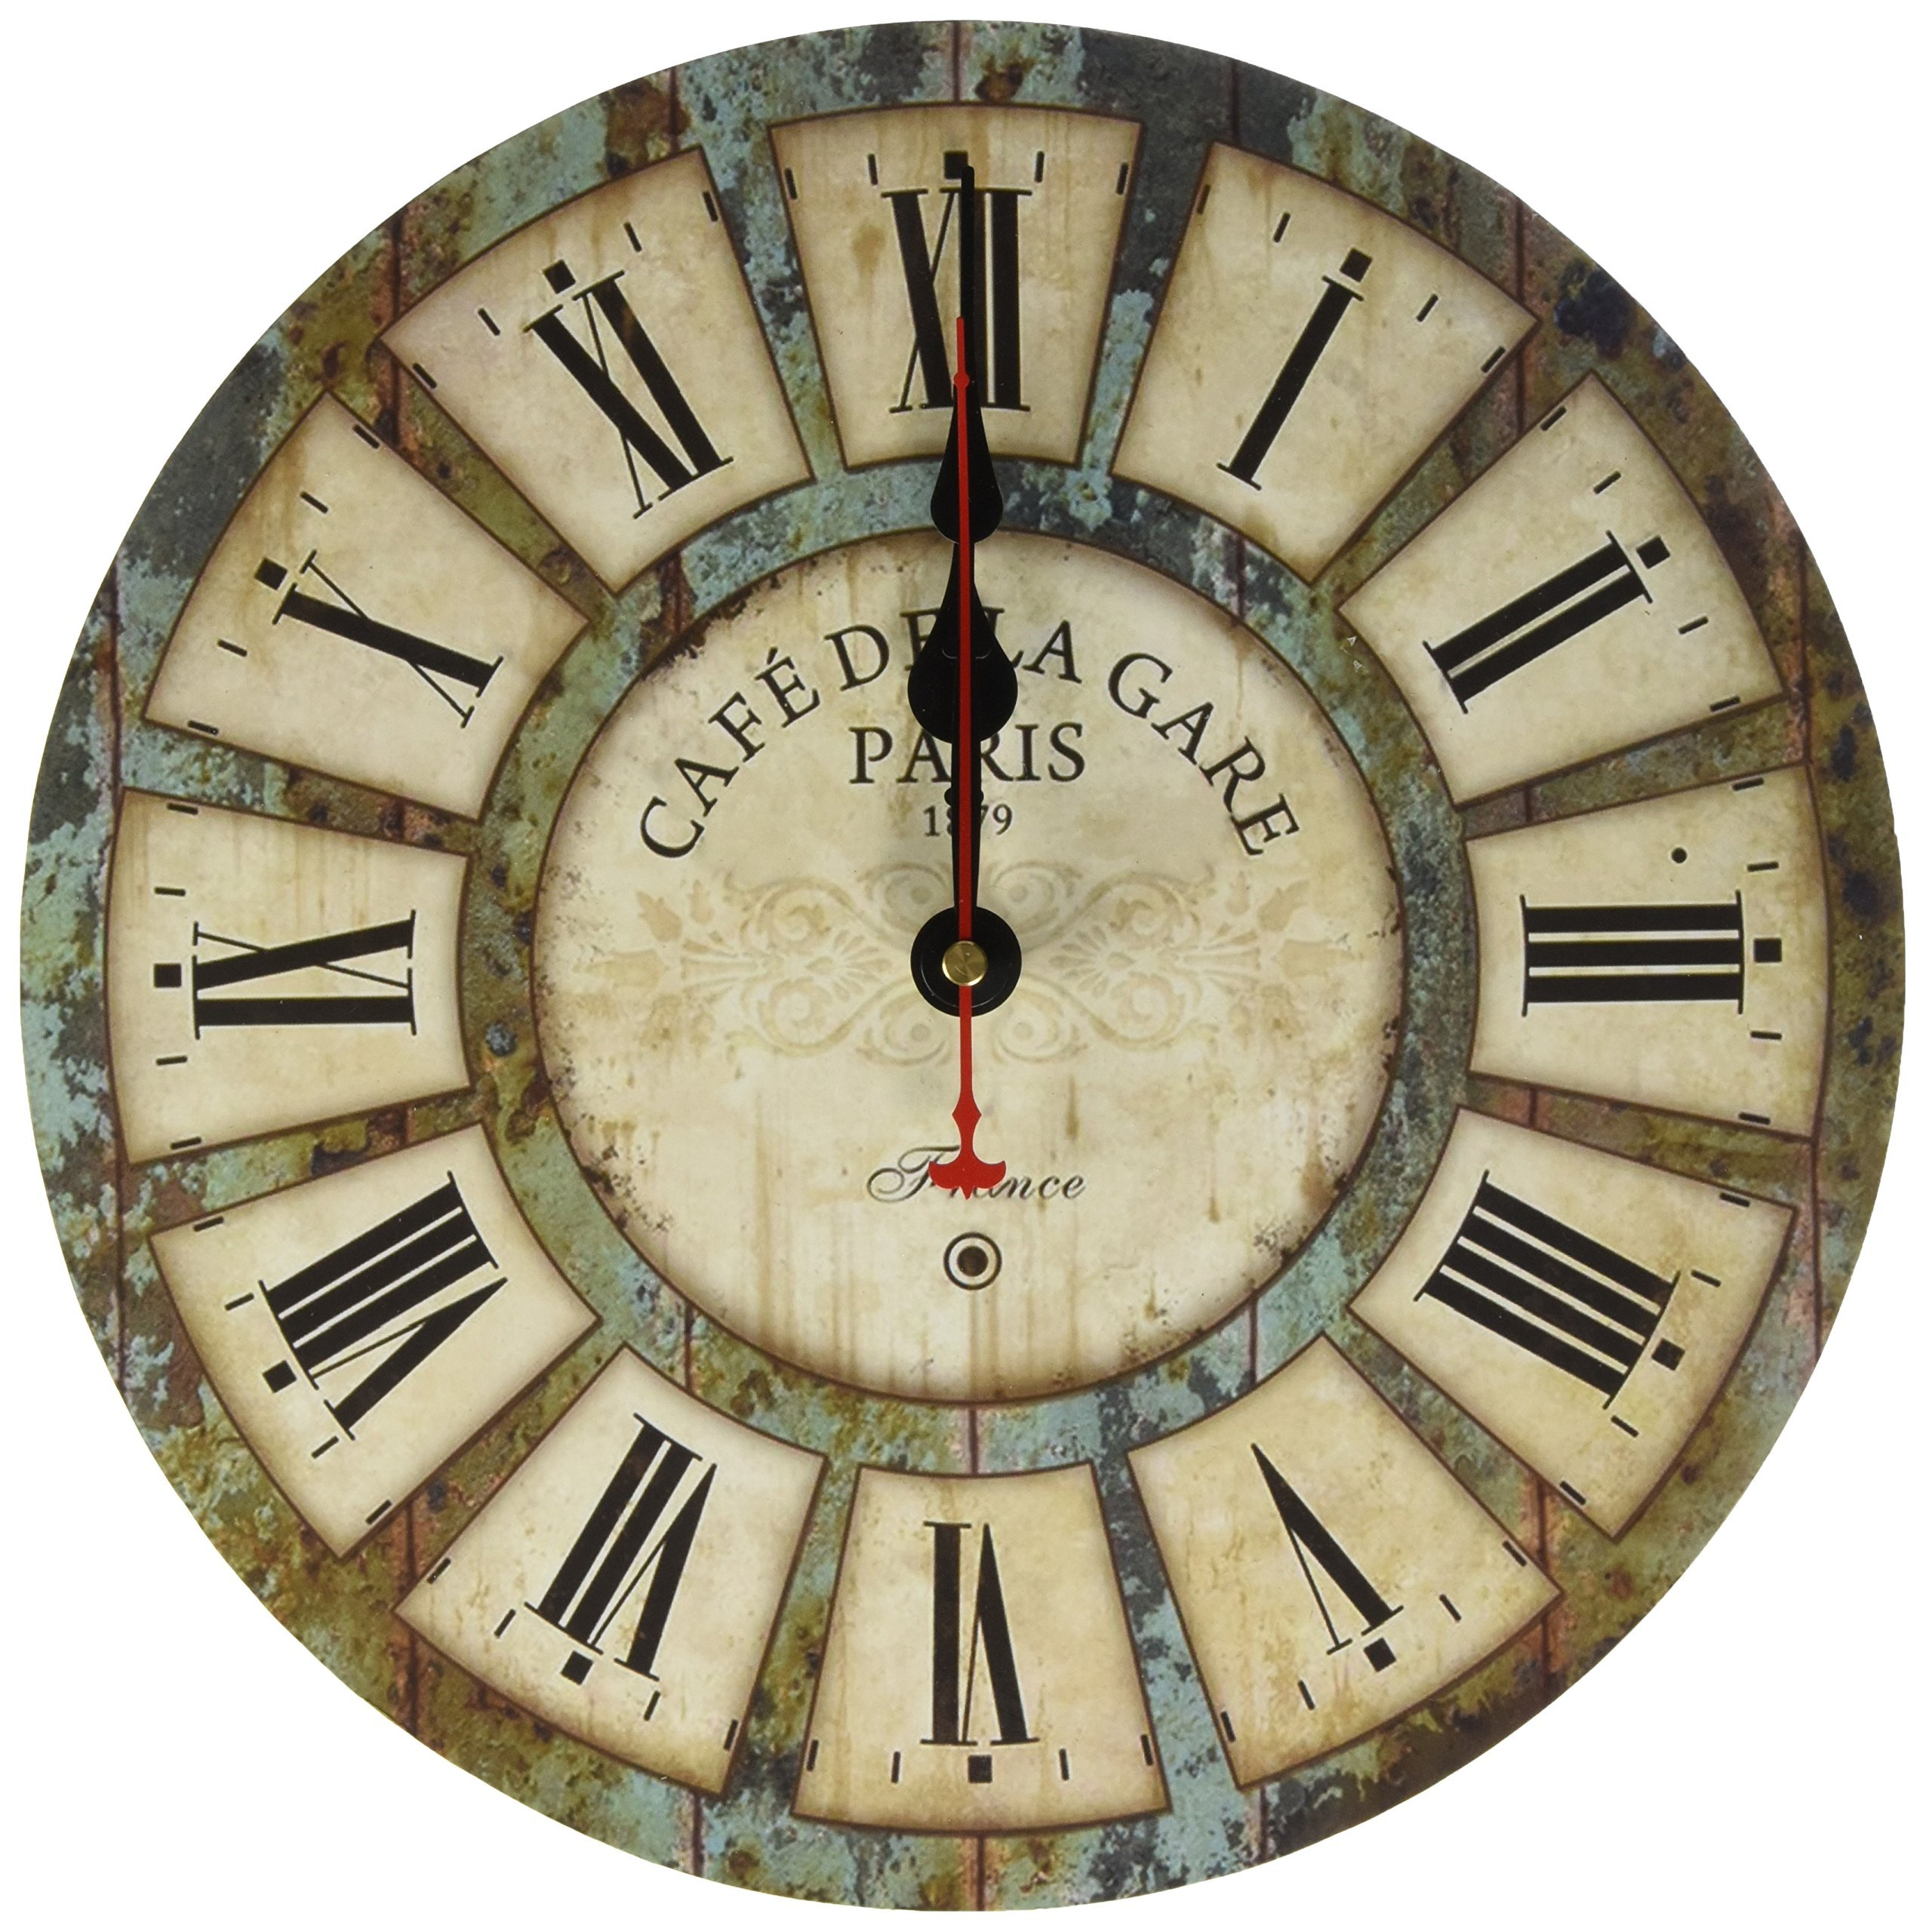 12-inch Wooden Clock, Eruner Vintage Wood Wall Clock - [Cafe De La Gare] Retro Style France Paris London Country Non-Ticking Silent Wooden Wall Clock (#03)